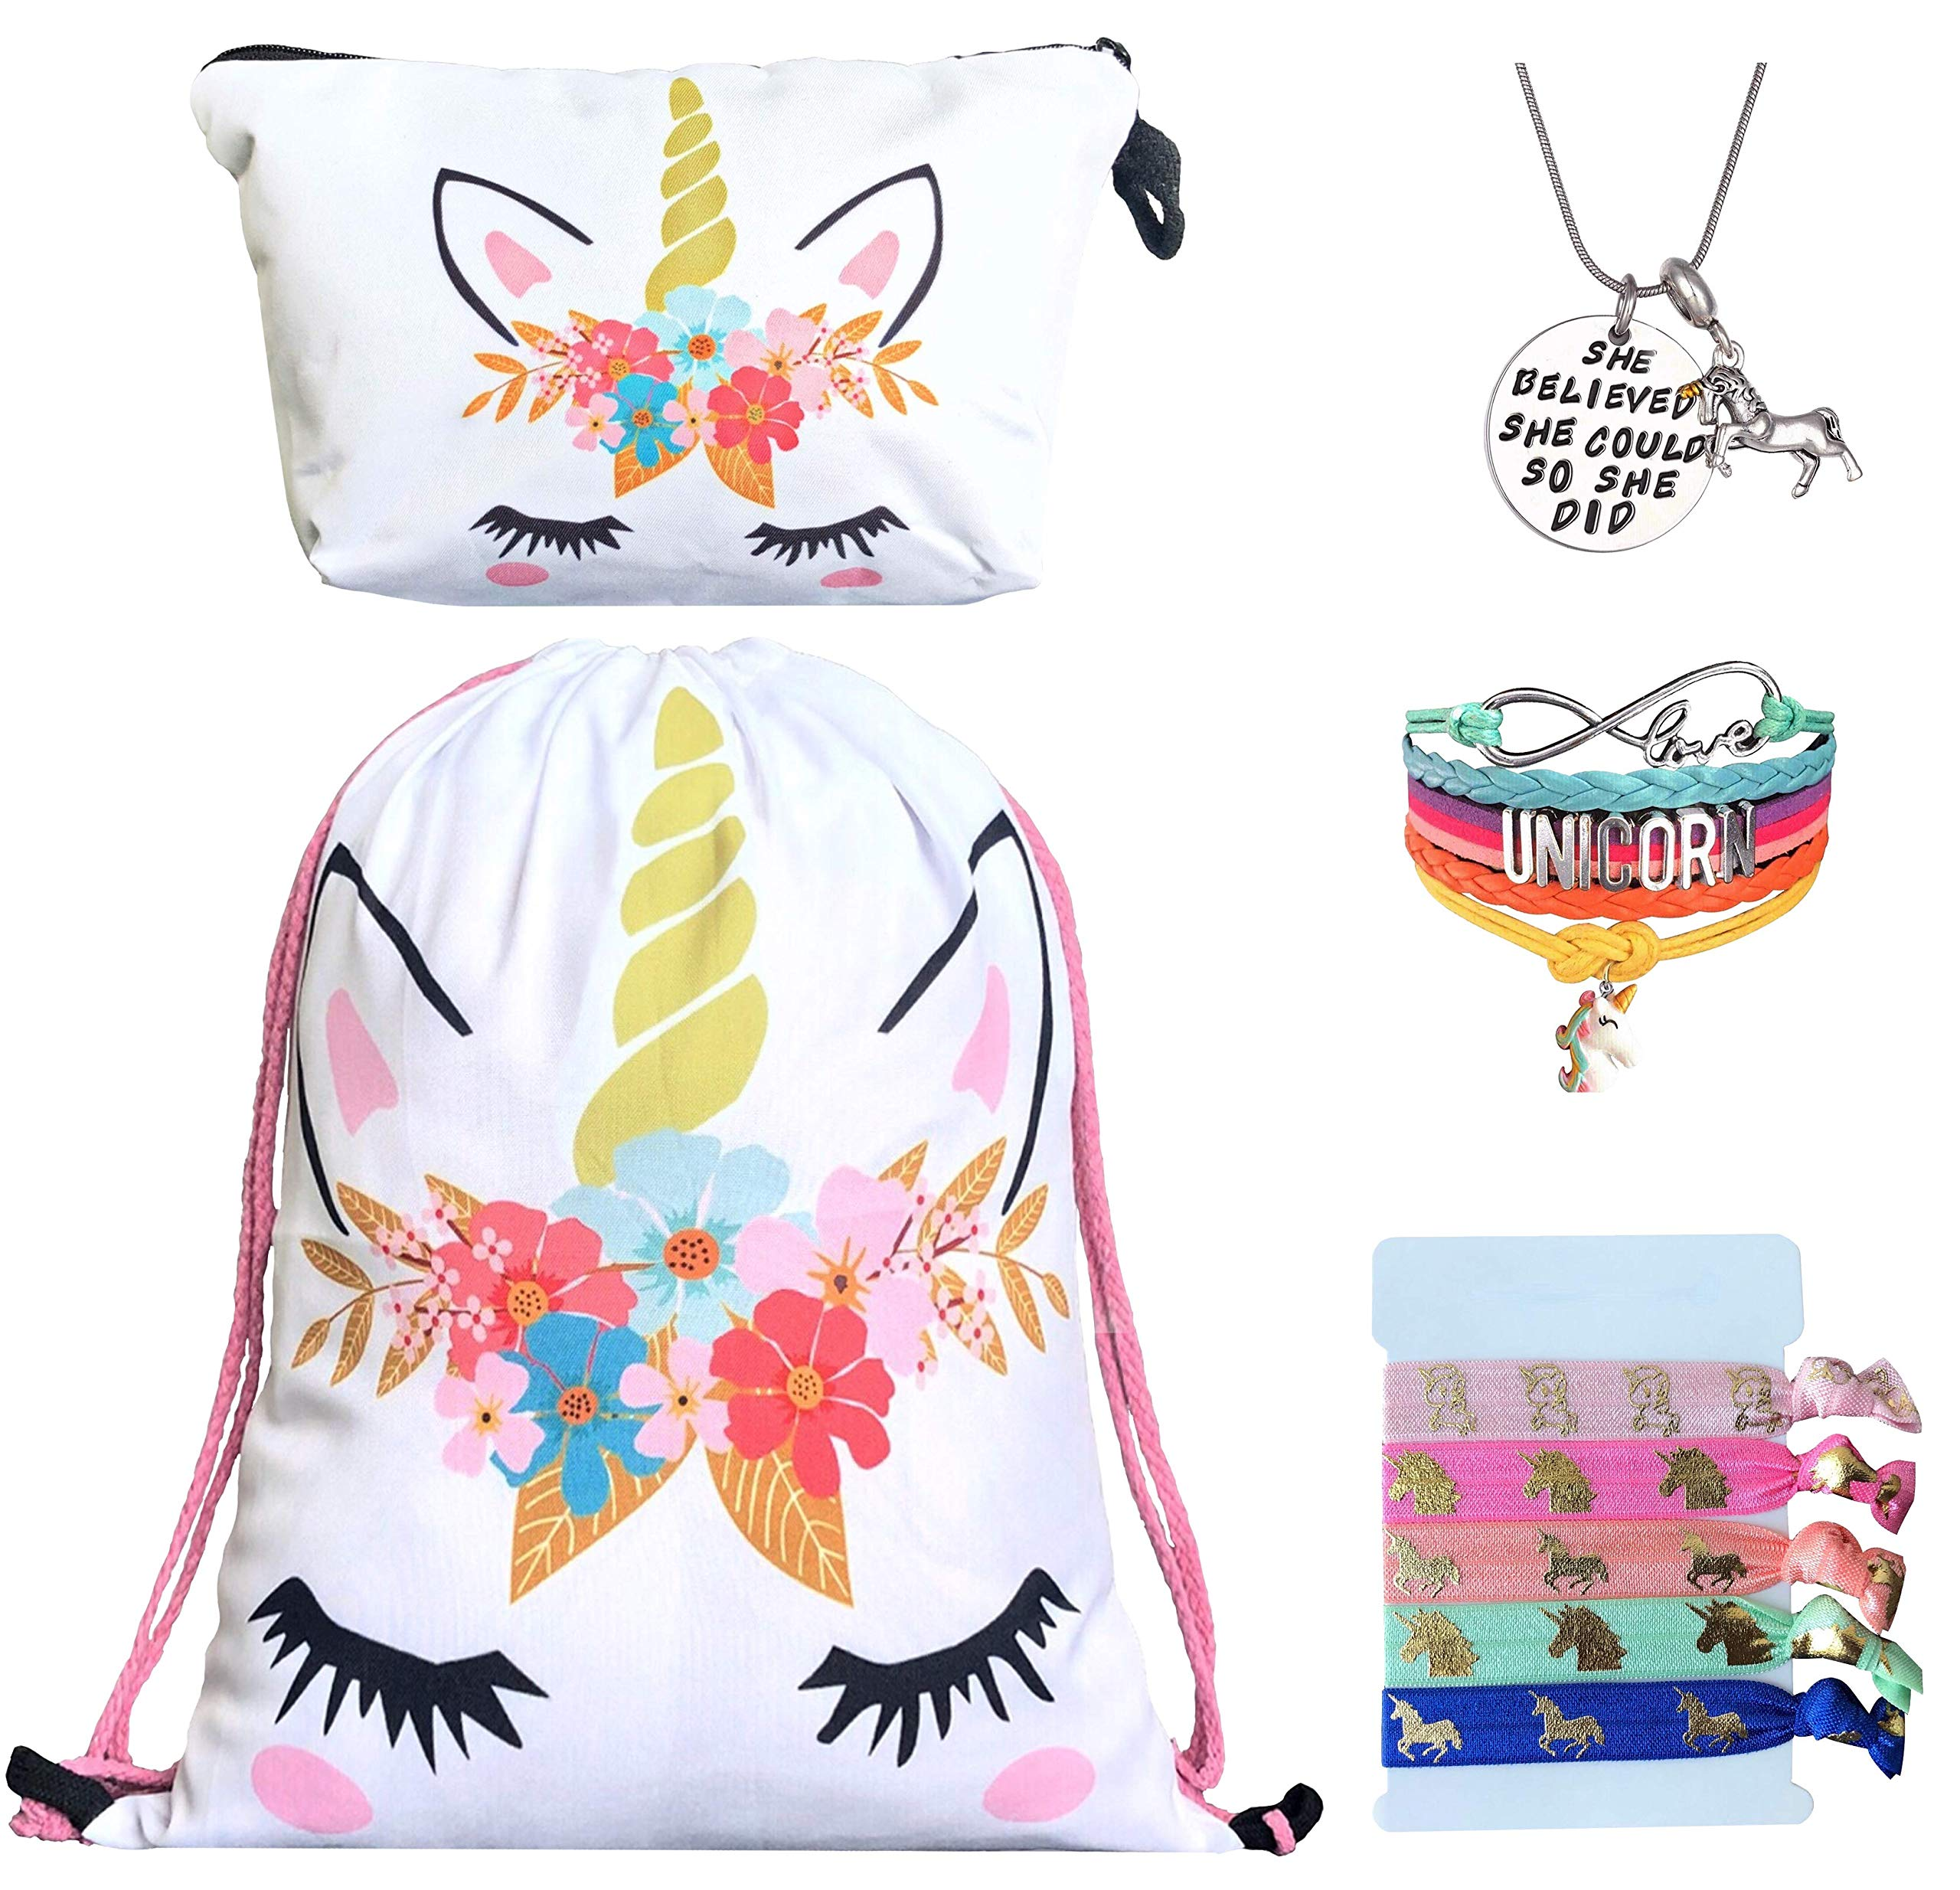 Unicorn Gifts for Girls - Unicorn Drawstring Backpack/Makeup Bag/Bracelet/Inspirational Necklace/Hair Ties (White Flower) by Doctor Unicorn